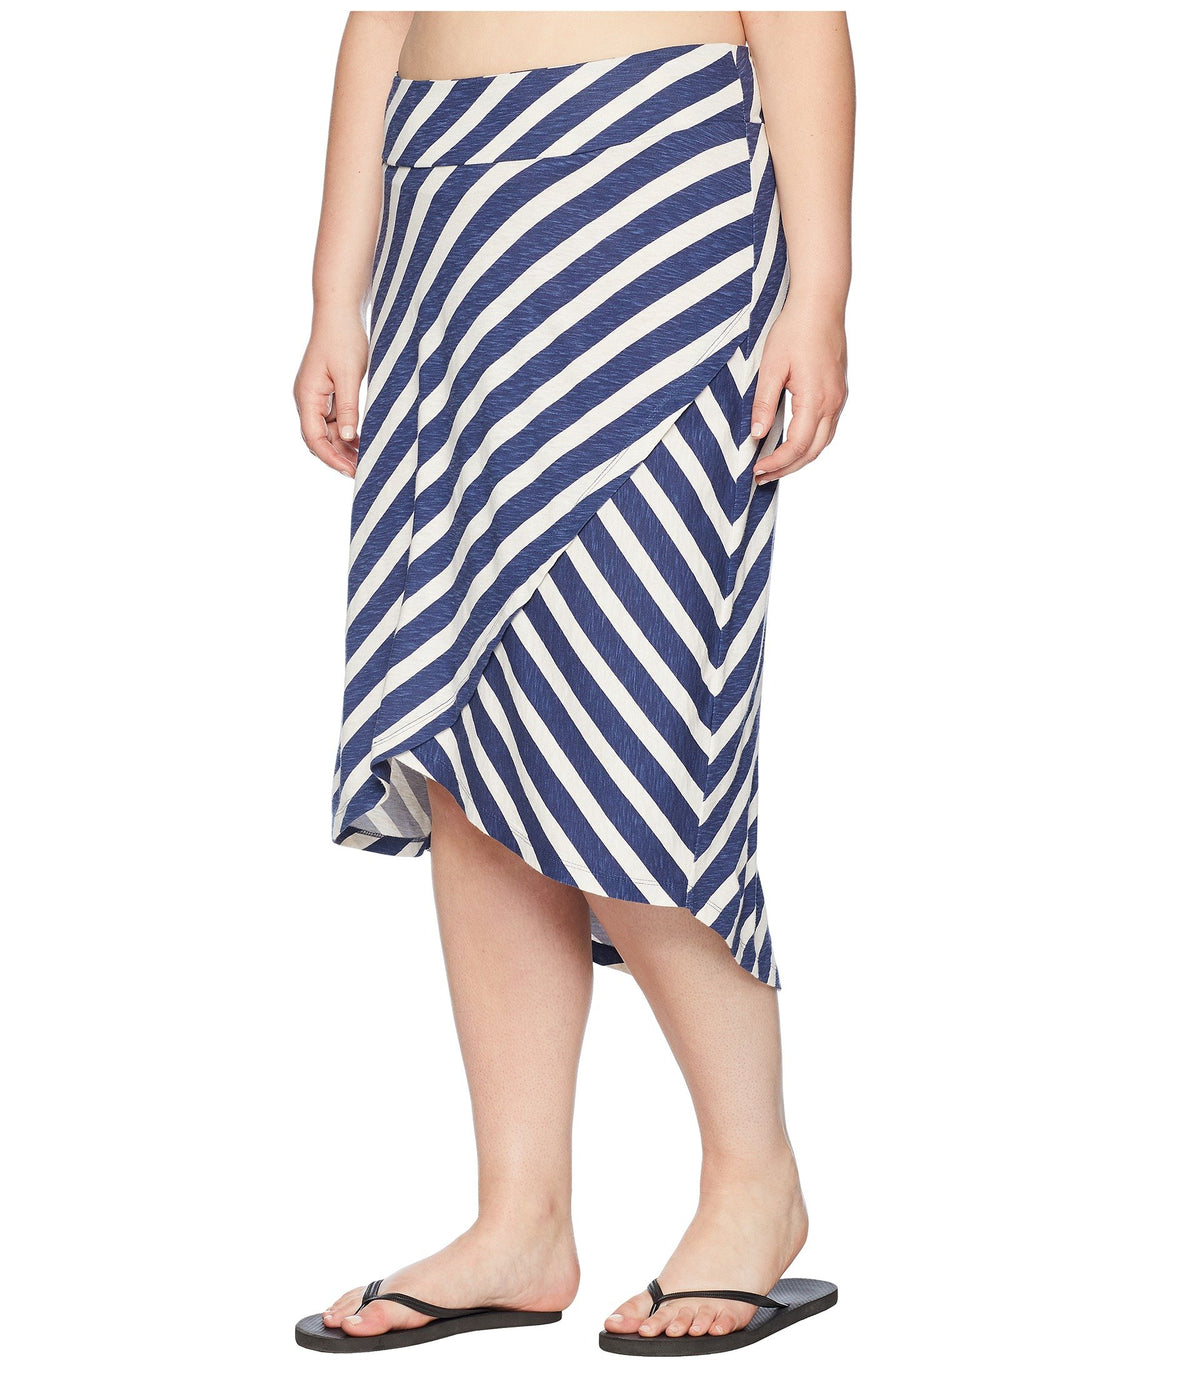 Plus Size Janessa Skirt